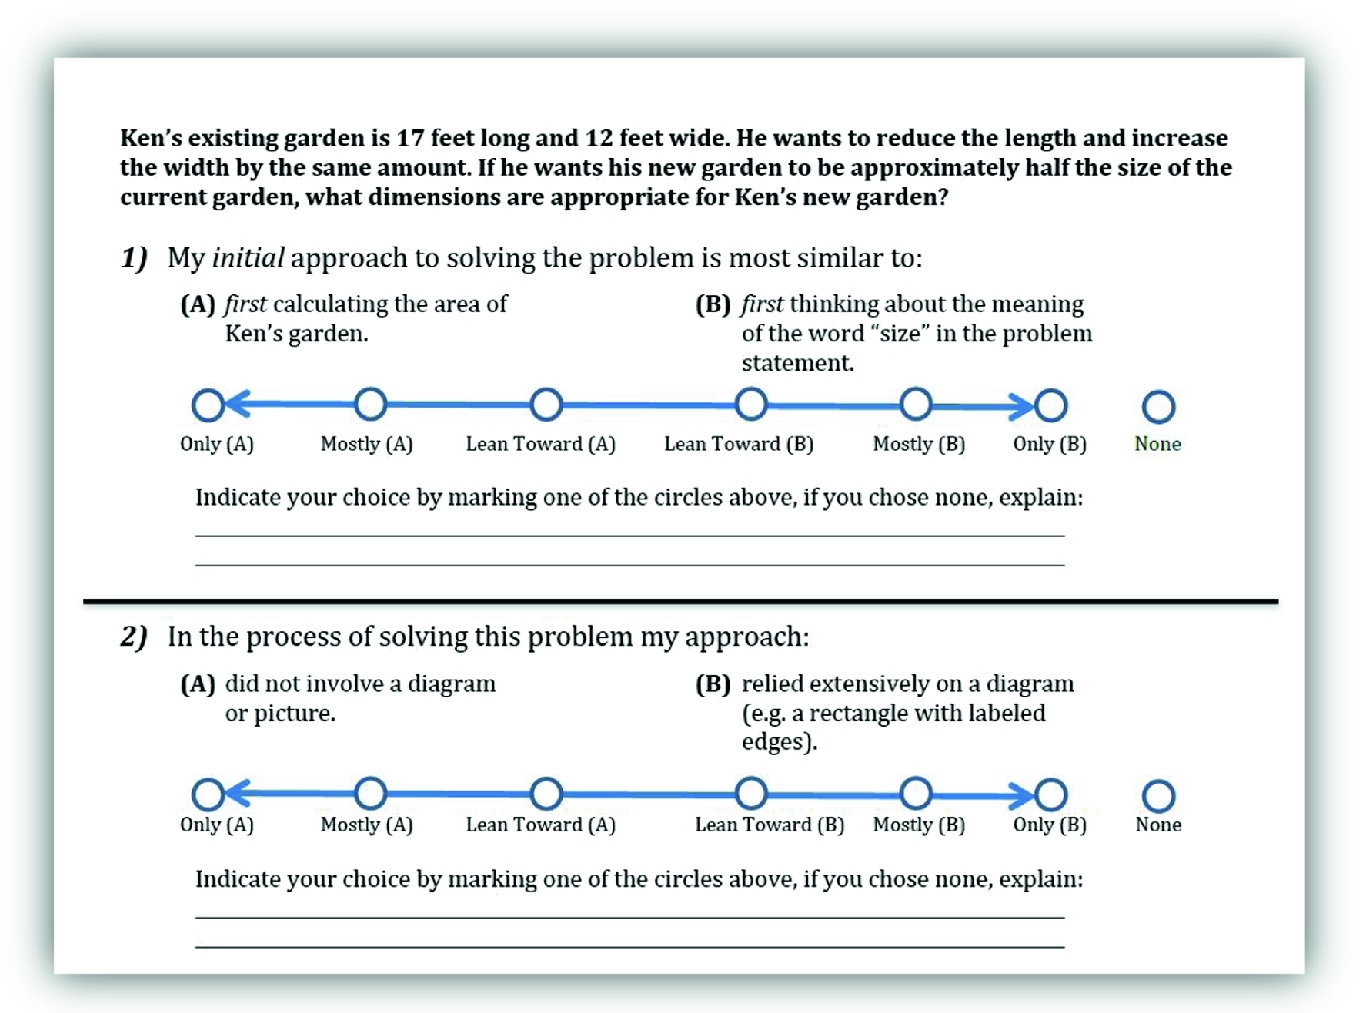 Toward Designing and Developing Likert Items to Assess Mathematical